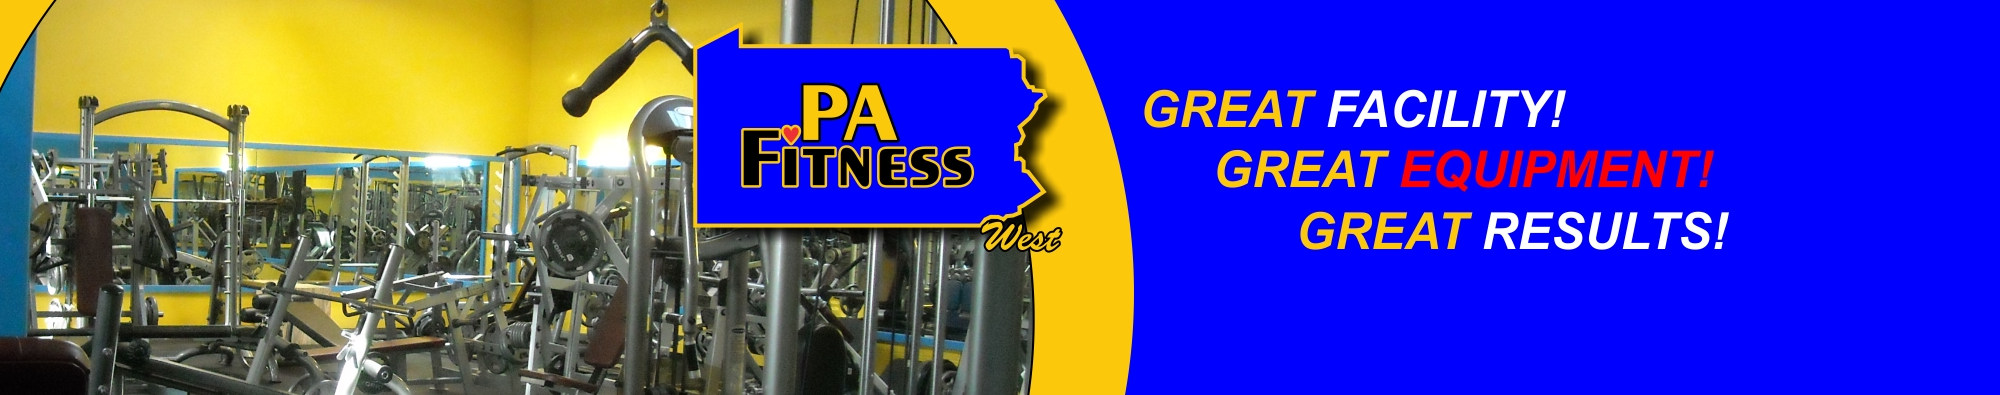 PA Fitness West Imperial PA